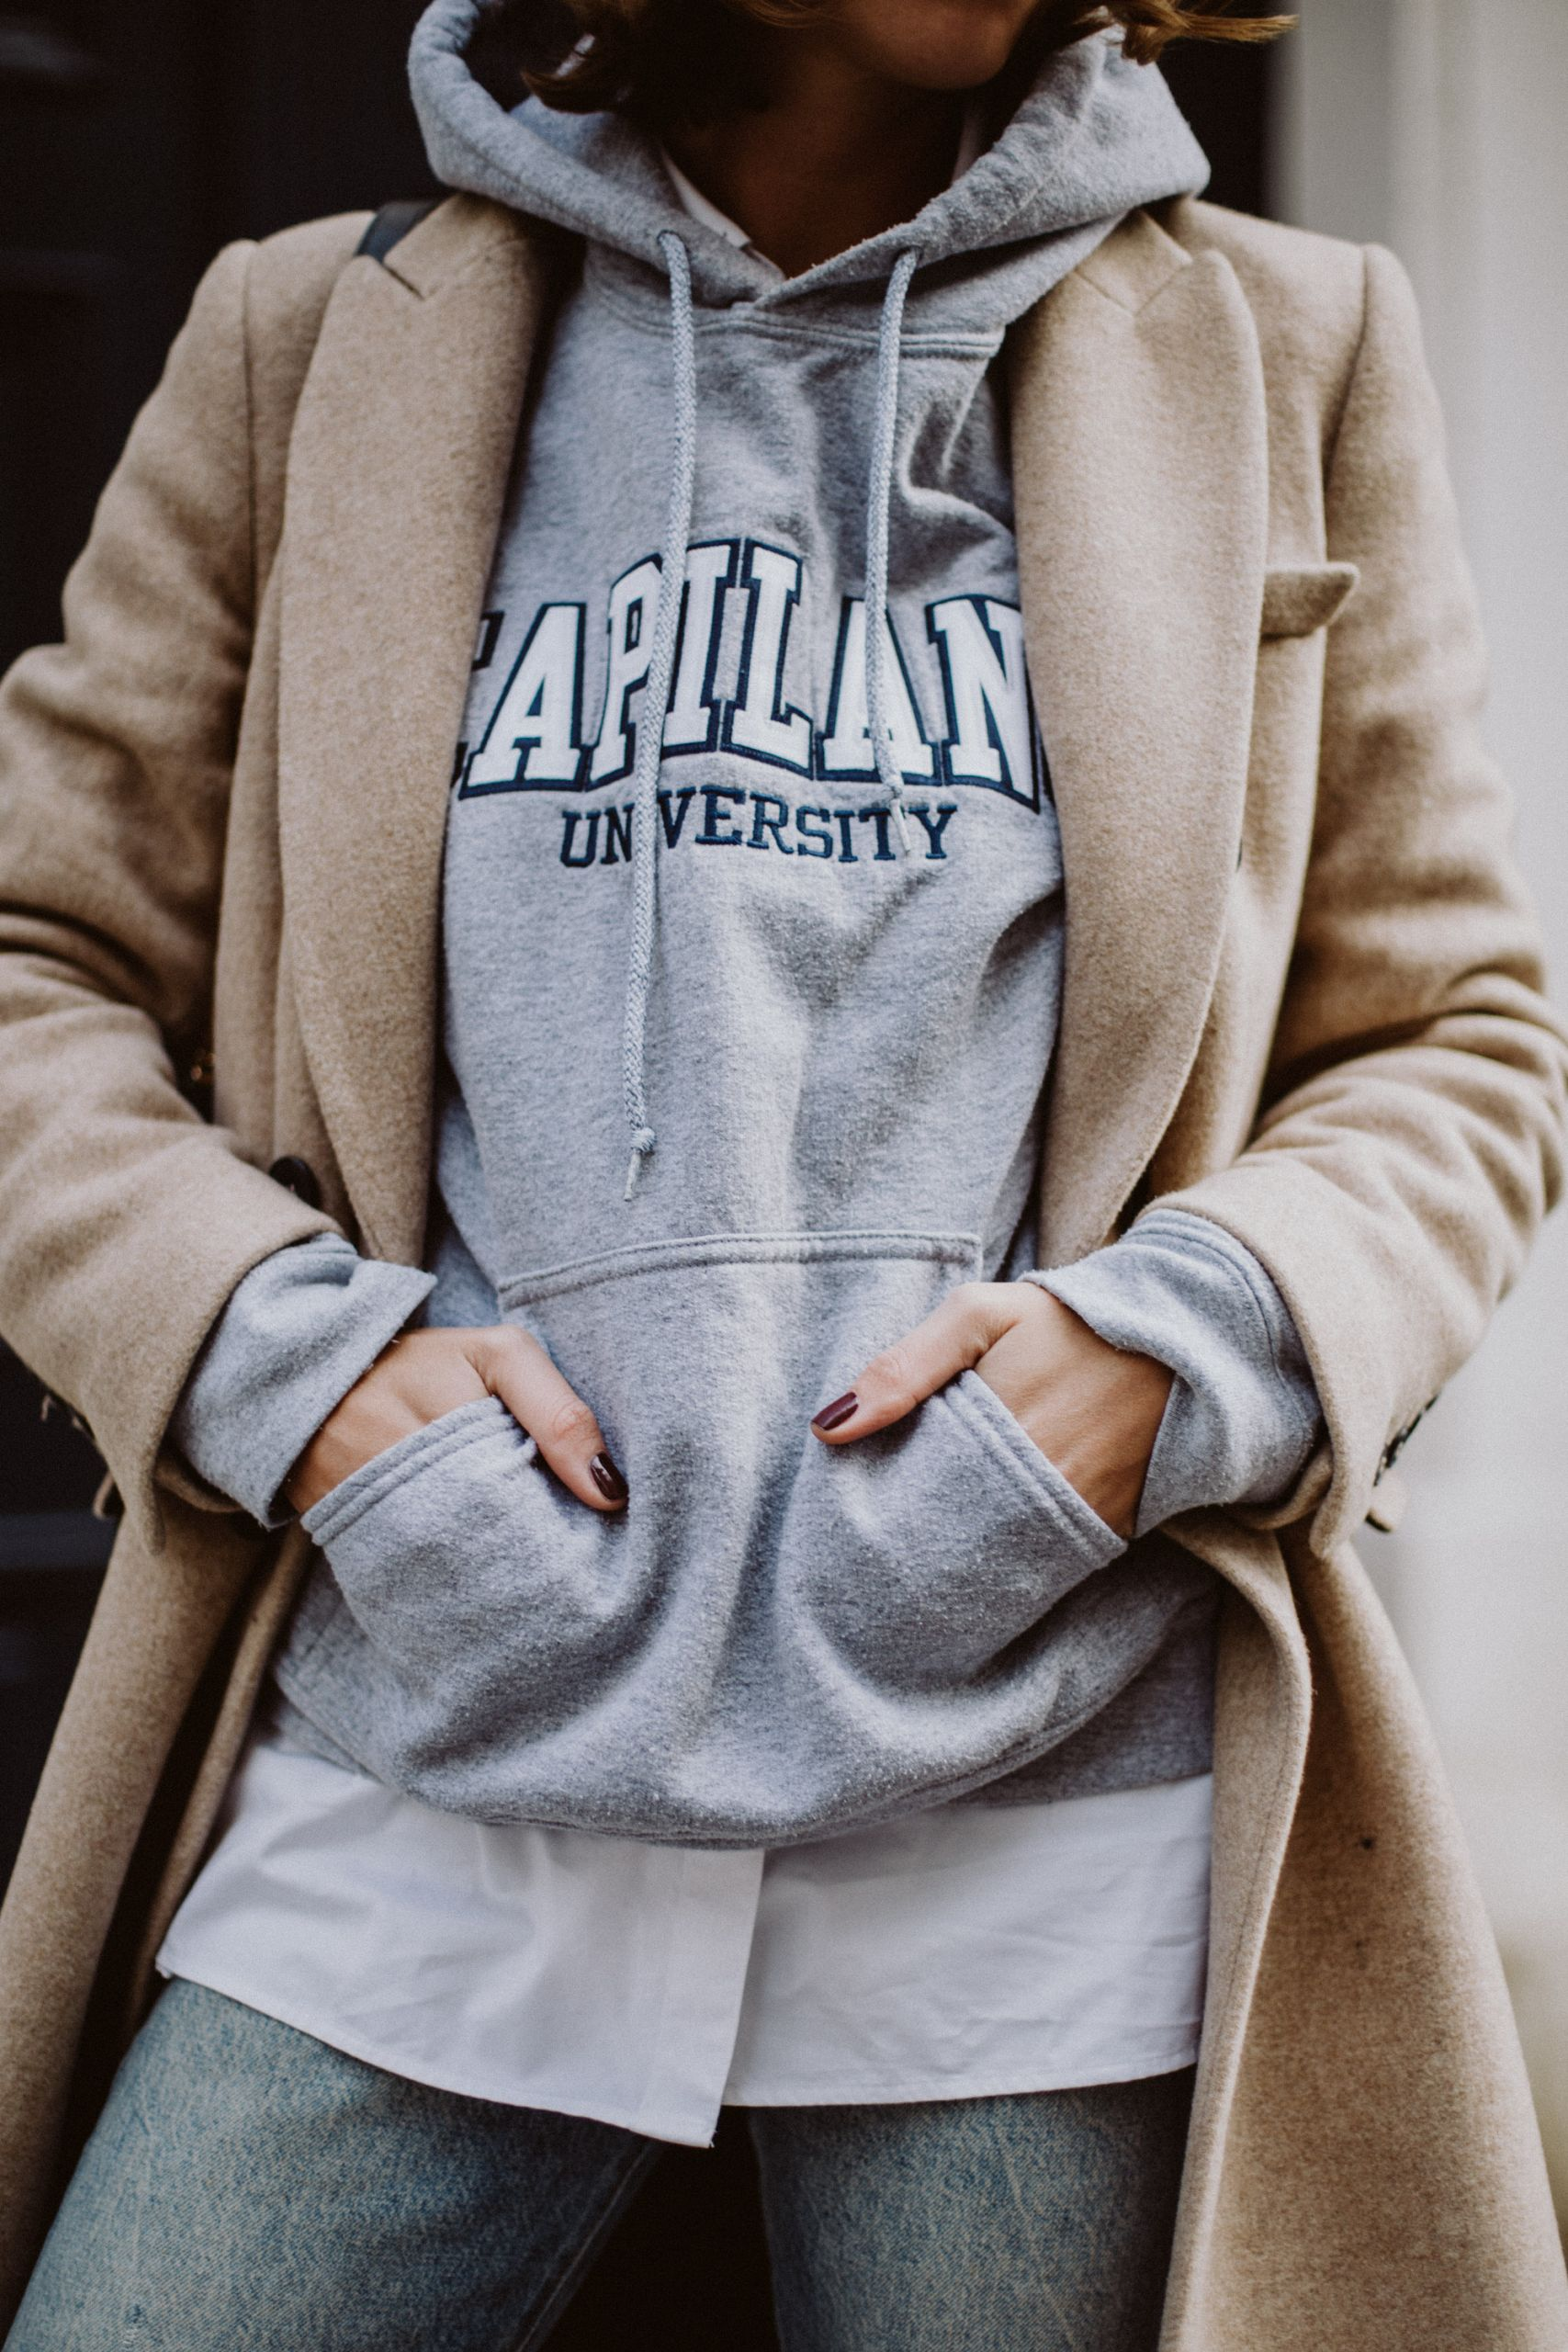 Boyfriend Sweaters, Literally | The Daily DoseBoyfriend Sweaters, Literally | The Daily Dose